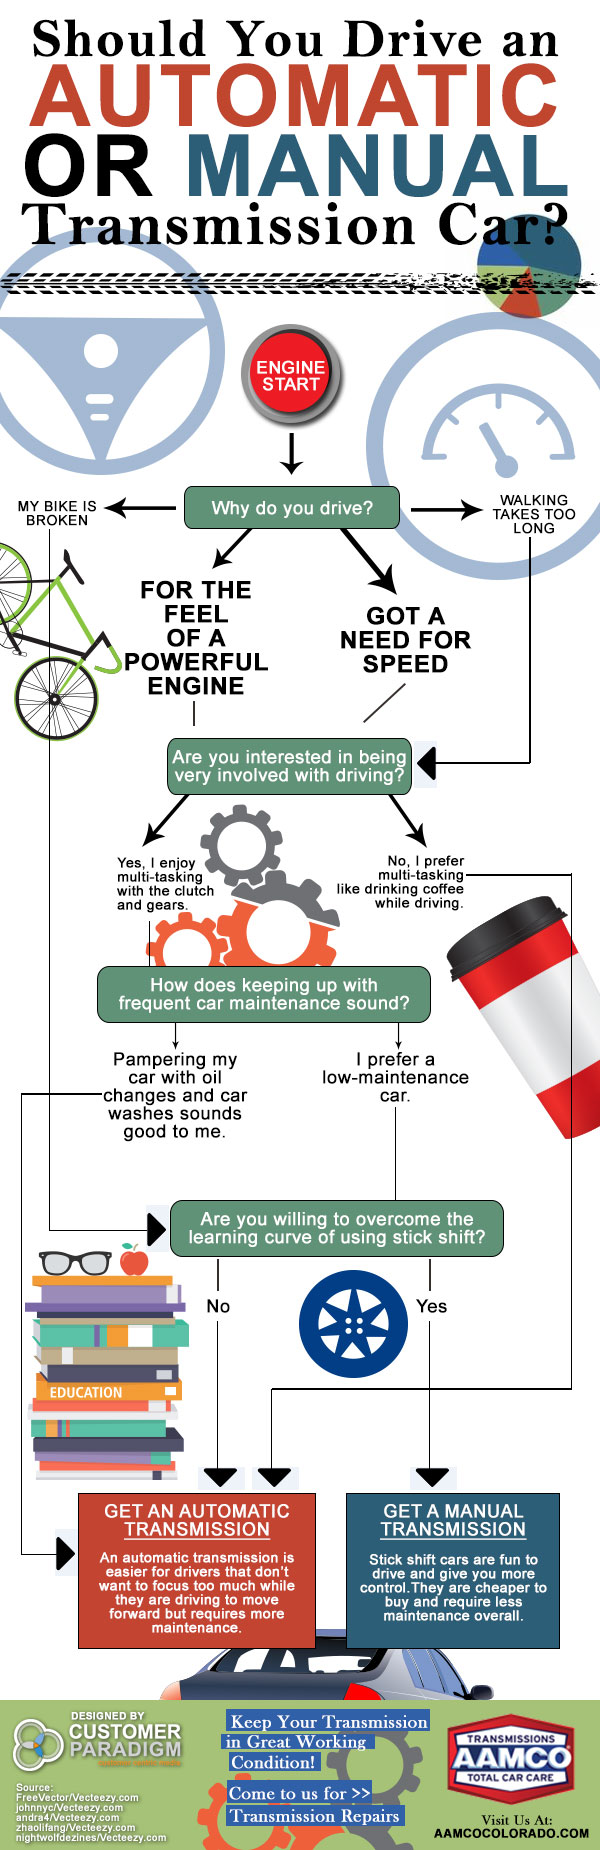 Should You Get a Manual or Automatic Transmission Infographic - AAMCO Colorado